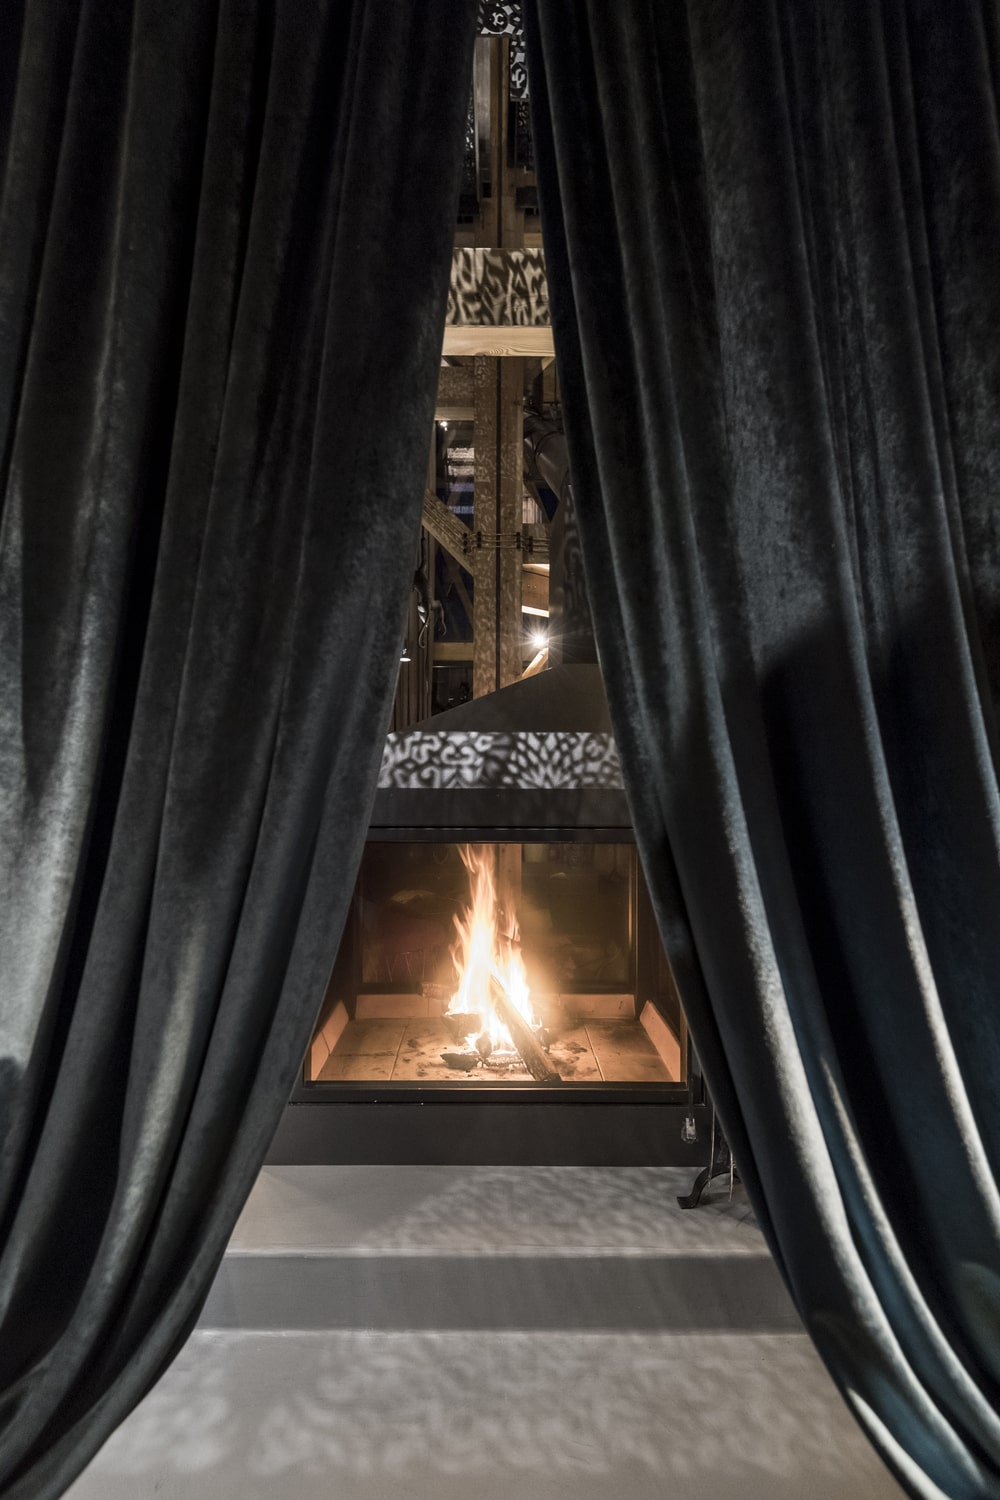 This is a close look at the large fireplace with intricate designs on it.